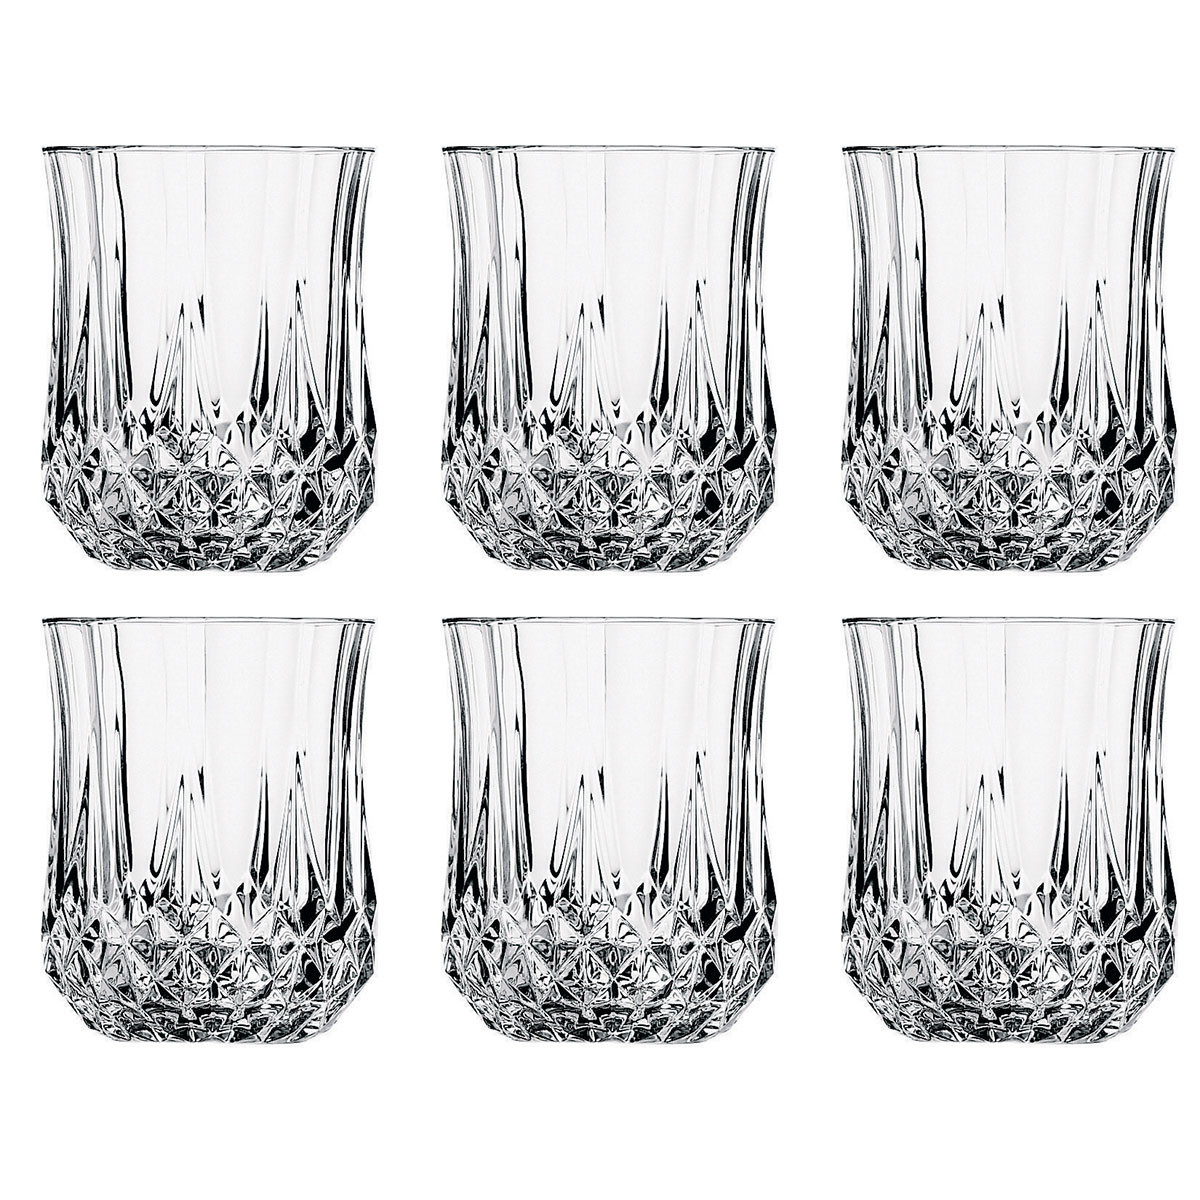 cristal d 39 arques 6 verres eau longchamp 32 cl comparer avec. Black Bedroom Furniture Sets. Home Design Ideas